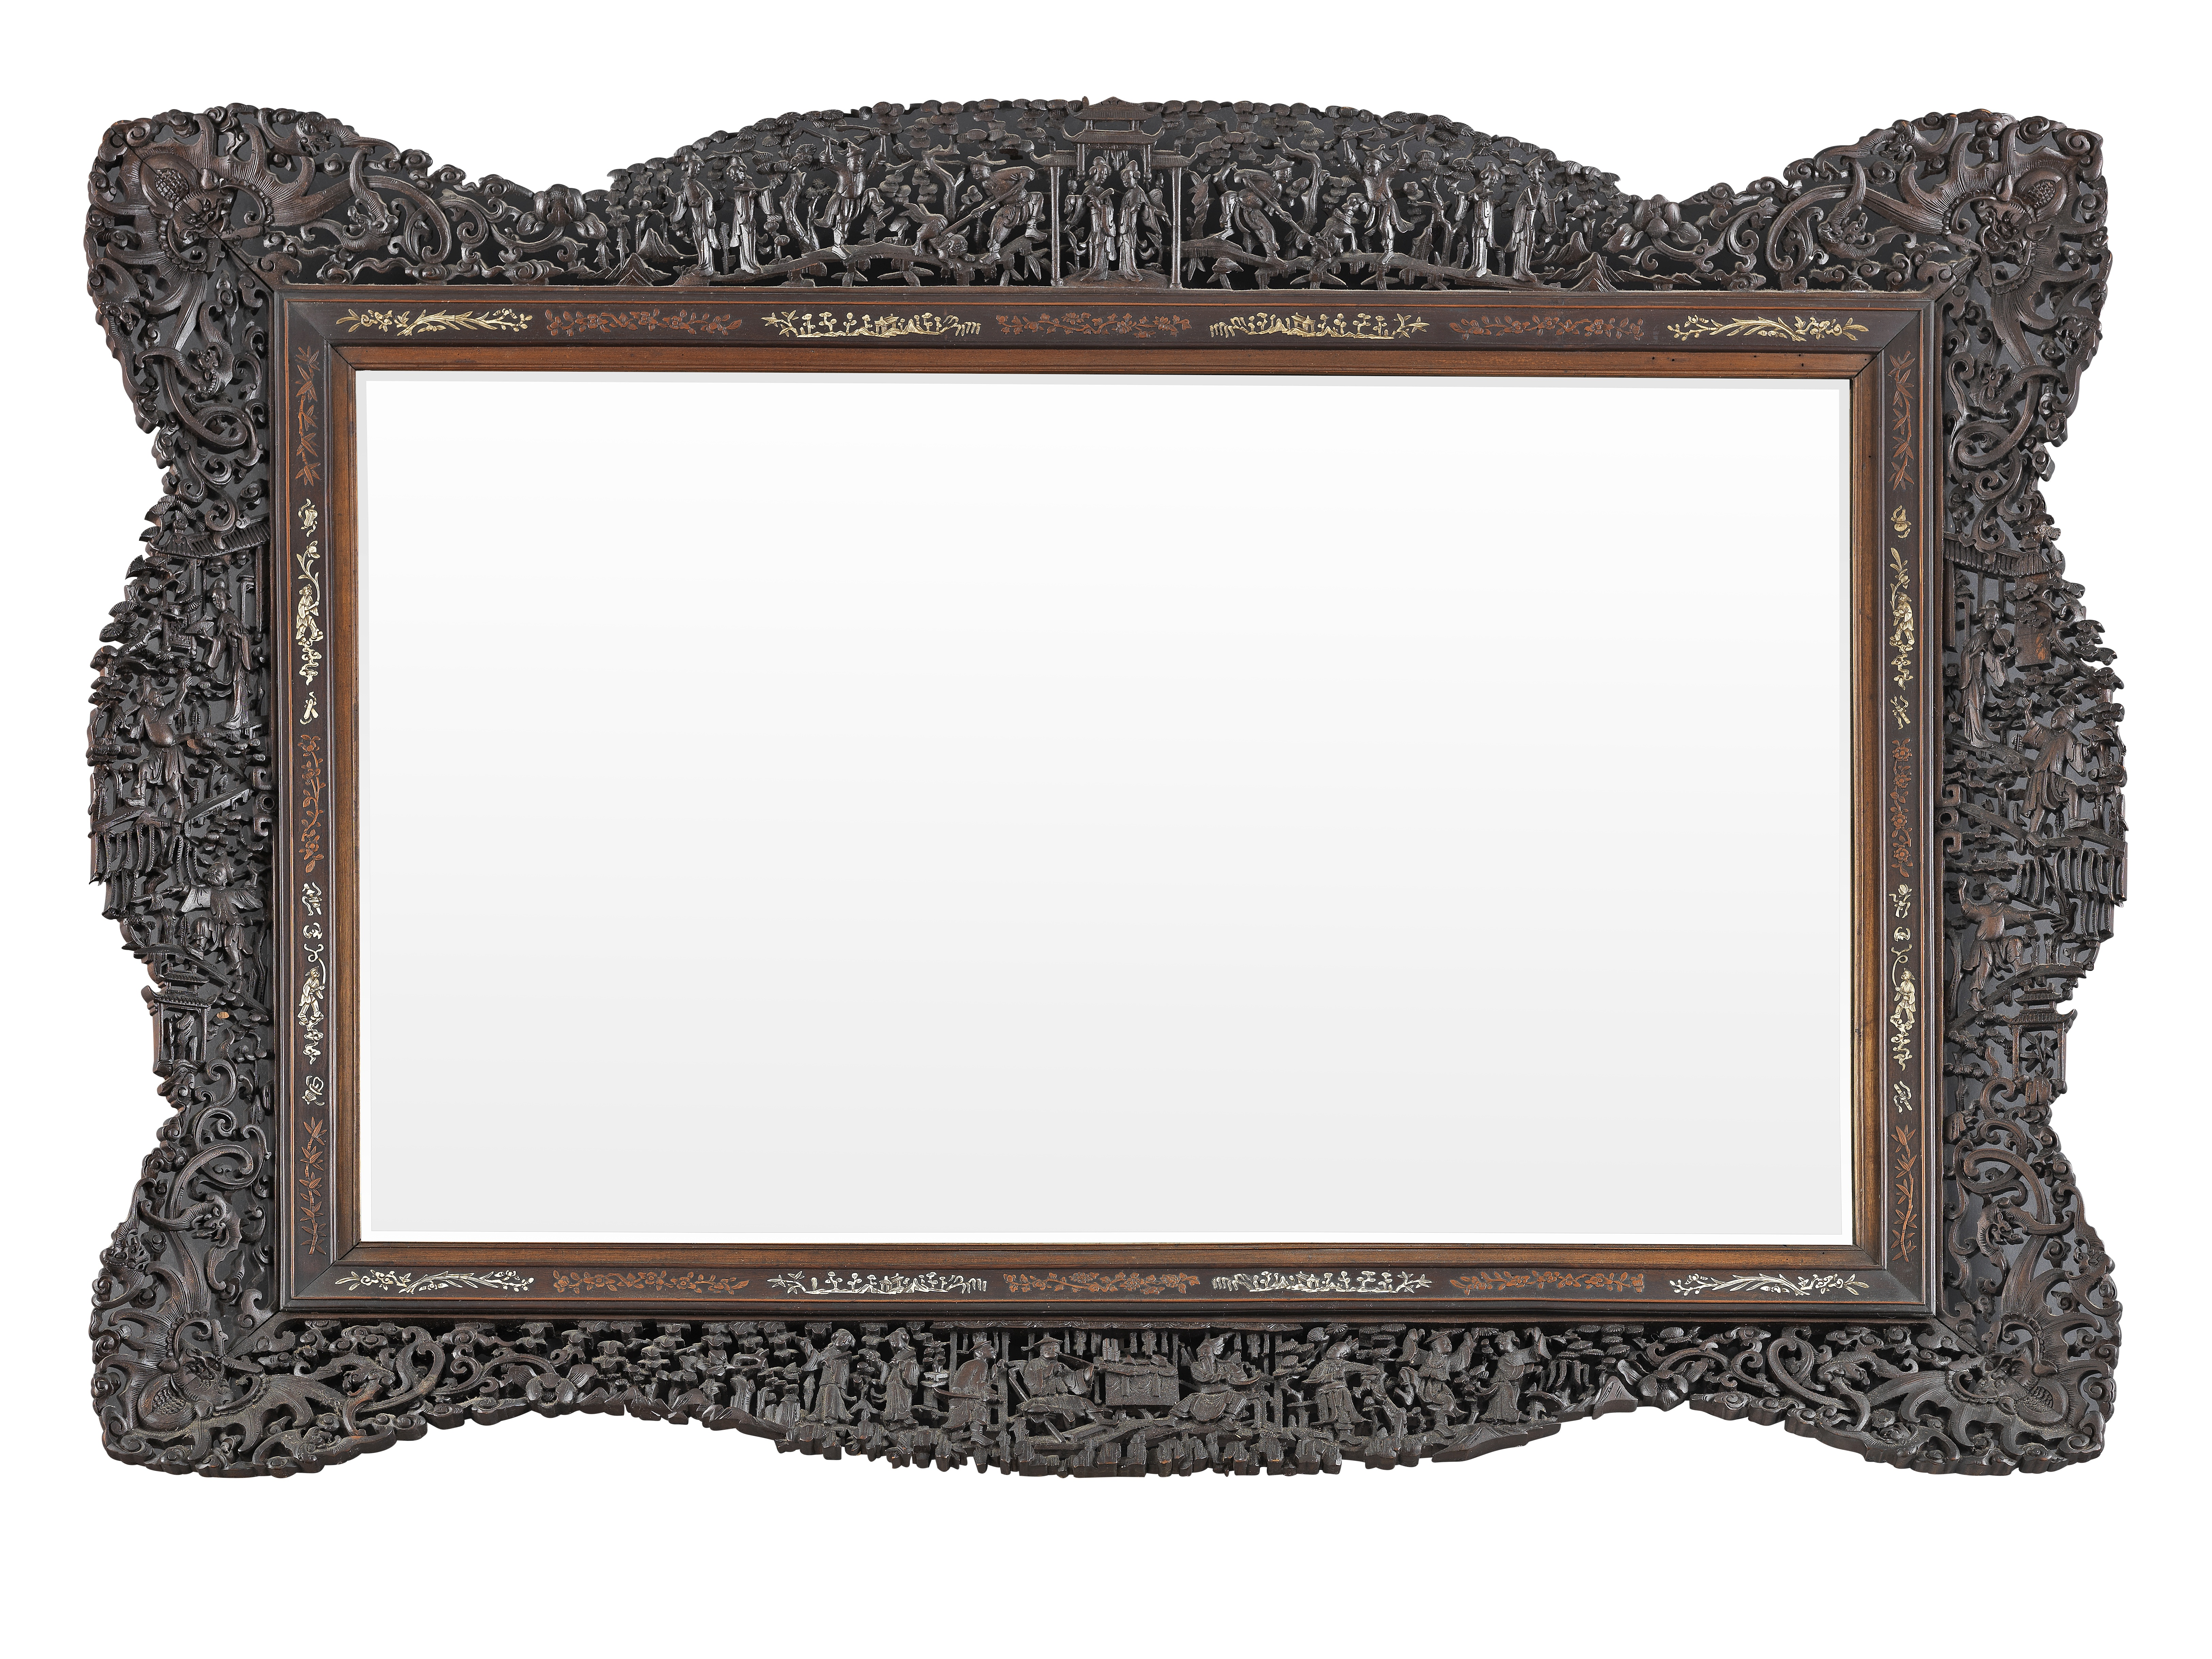 A LARGE CARVED HARDWOOD 'CANTON' MIRROR 19th century